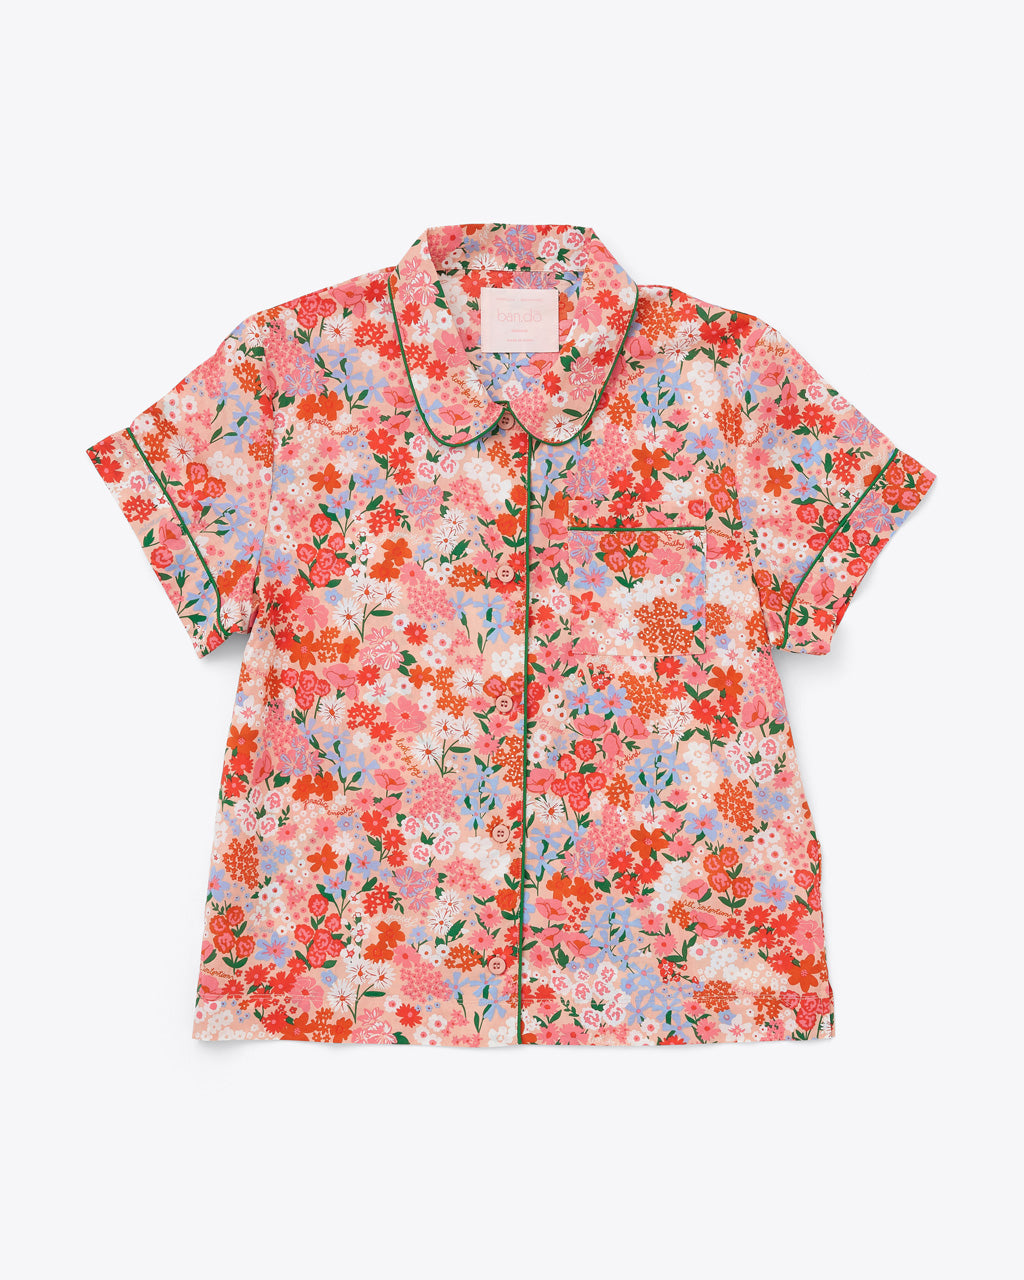 short sleeve leisure shirt with a bright floral pattern